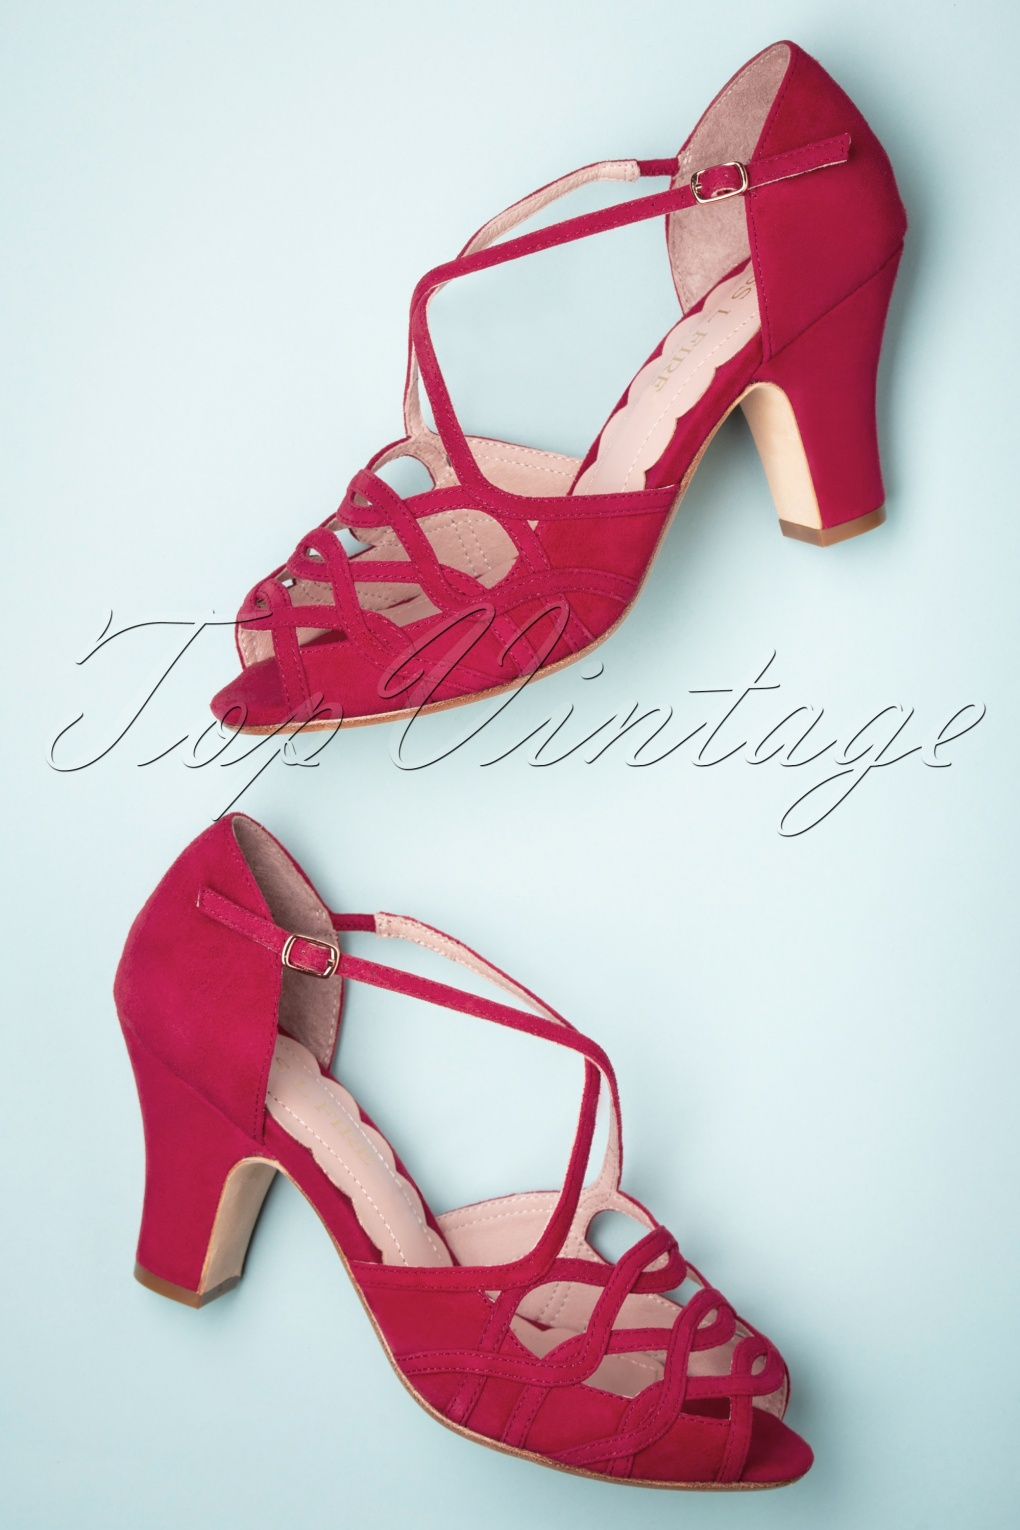 Vintage Heels, Retro Heels, Pumps, Shoes 40s Adele Strappy Cross Over Sandals in Red £126.15 AT vintagedancer.com